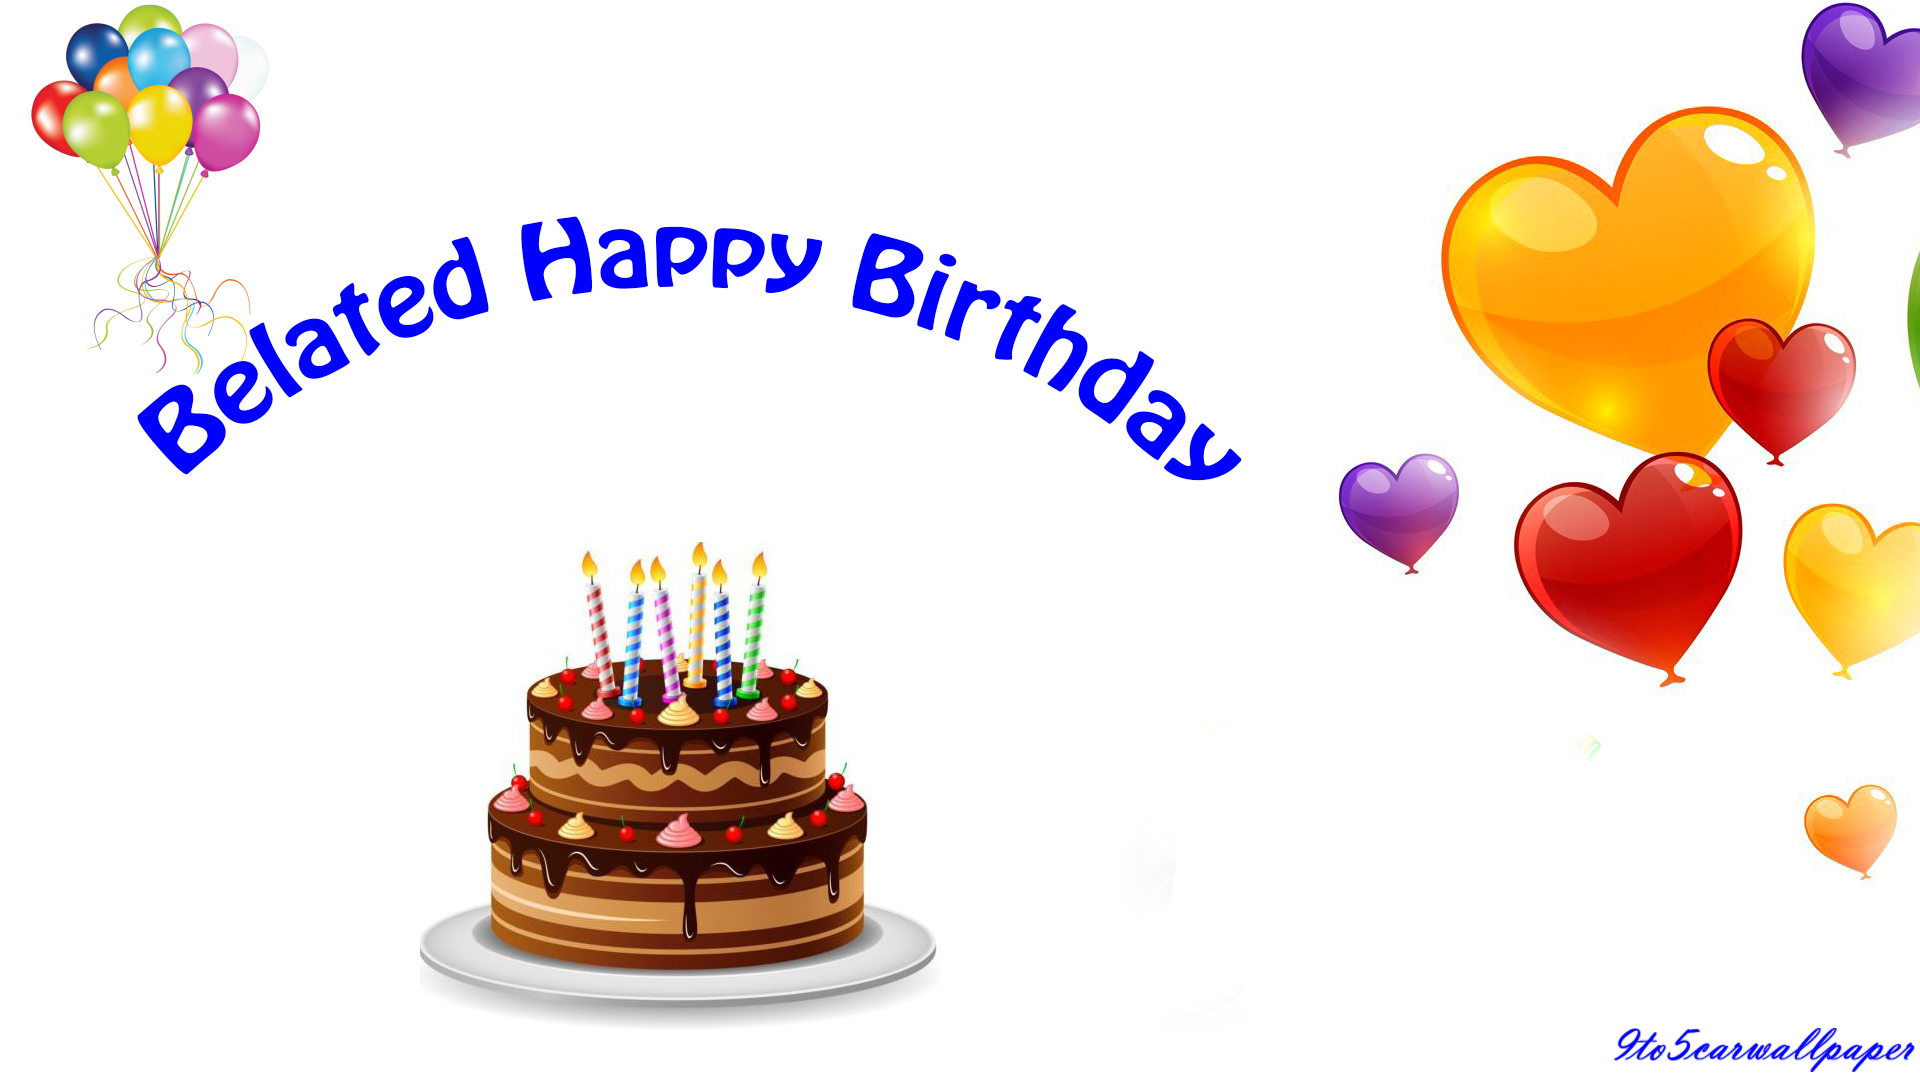 Belated Happy Birthday Quotes Images and Wallpapers - My Site